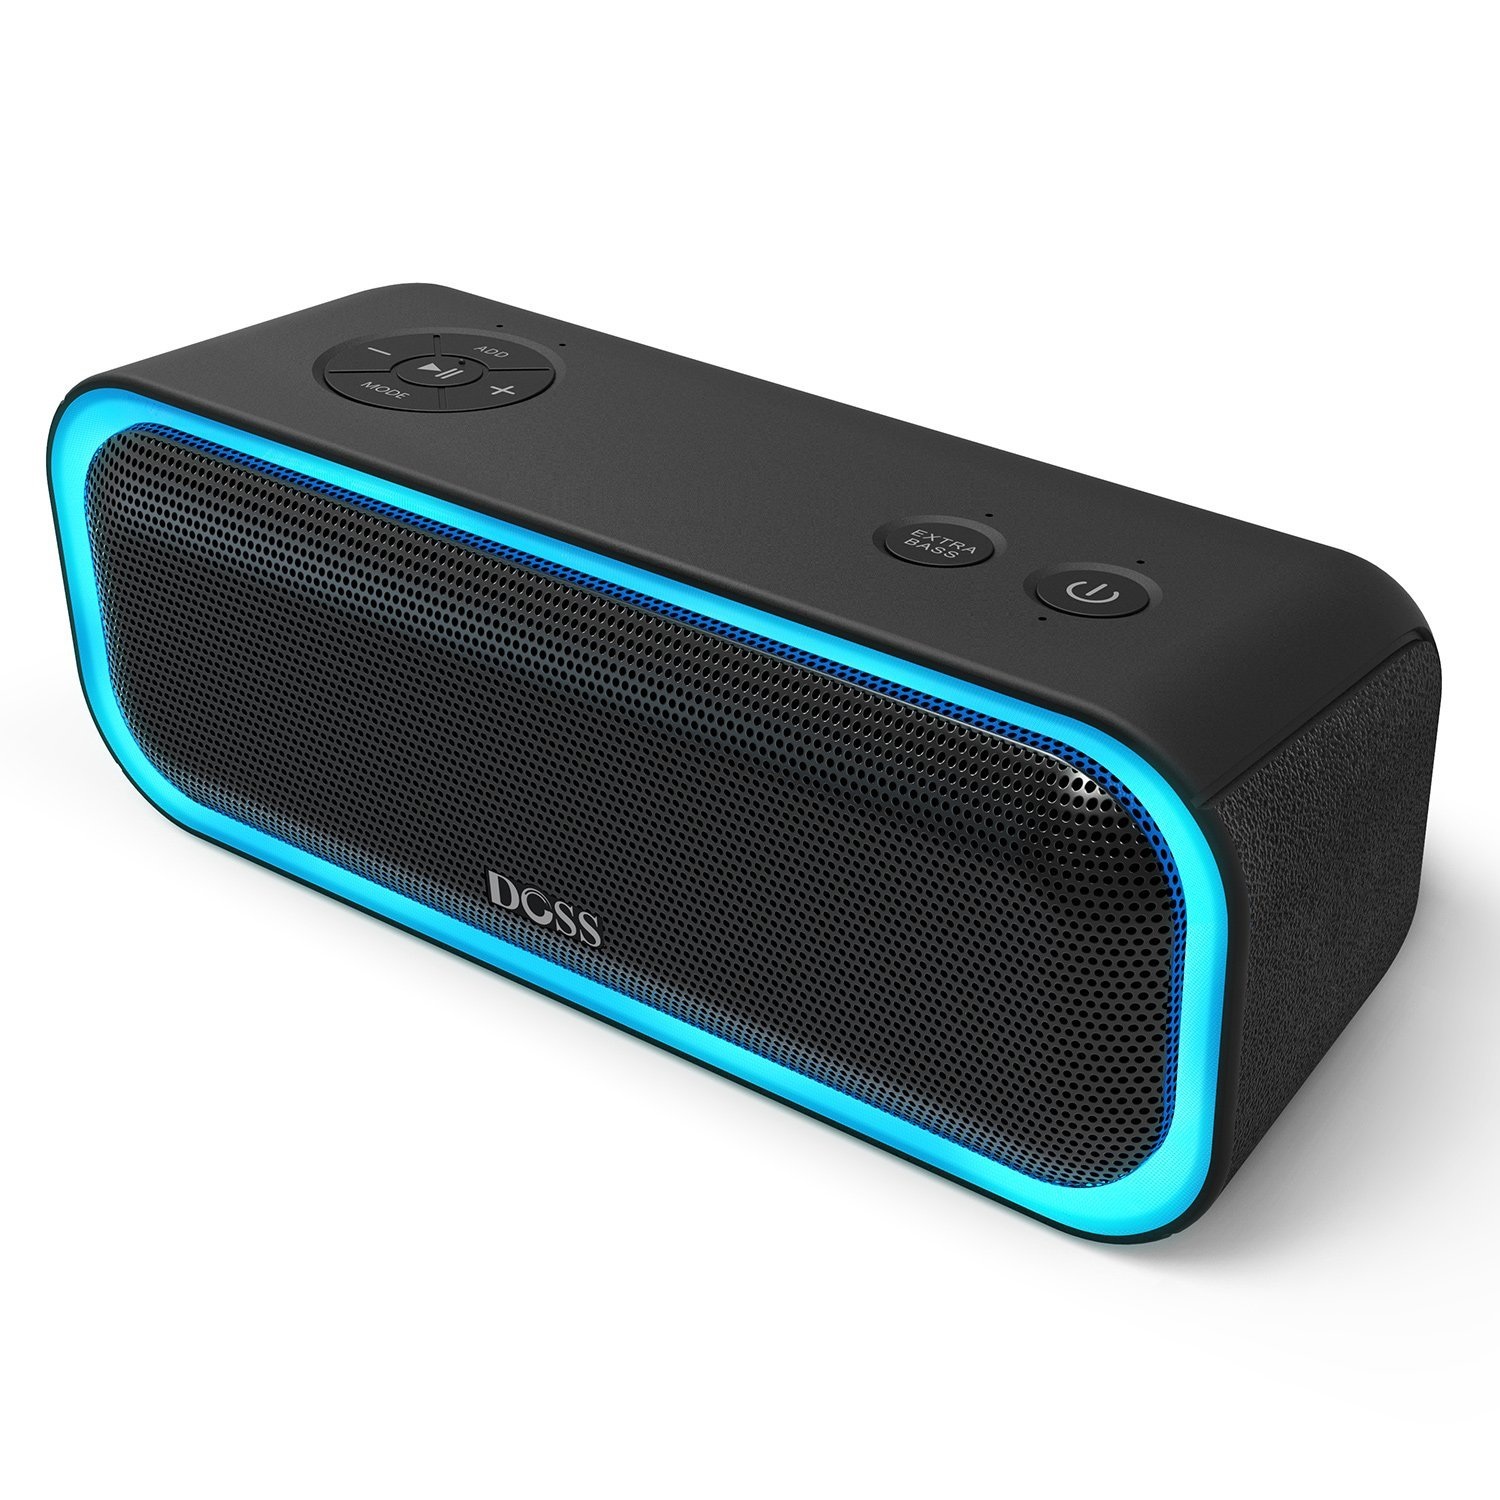 DOSS SoundBox Pro Wireless Bluetooth Speaker, 20W Speaker with 360° Sound, Enhanced Bass, Stereo Pairing, Multiple LED Light, Long-Lasting Battery Life for iPhone, Samsung, iPad, Echo dot, Good Gift by DOSS